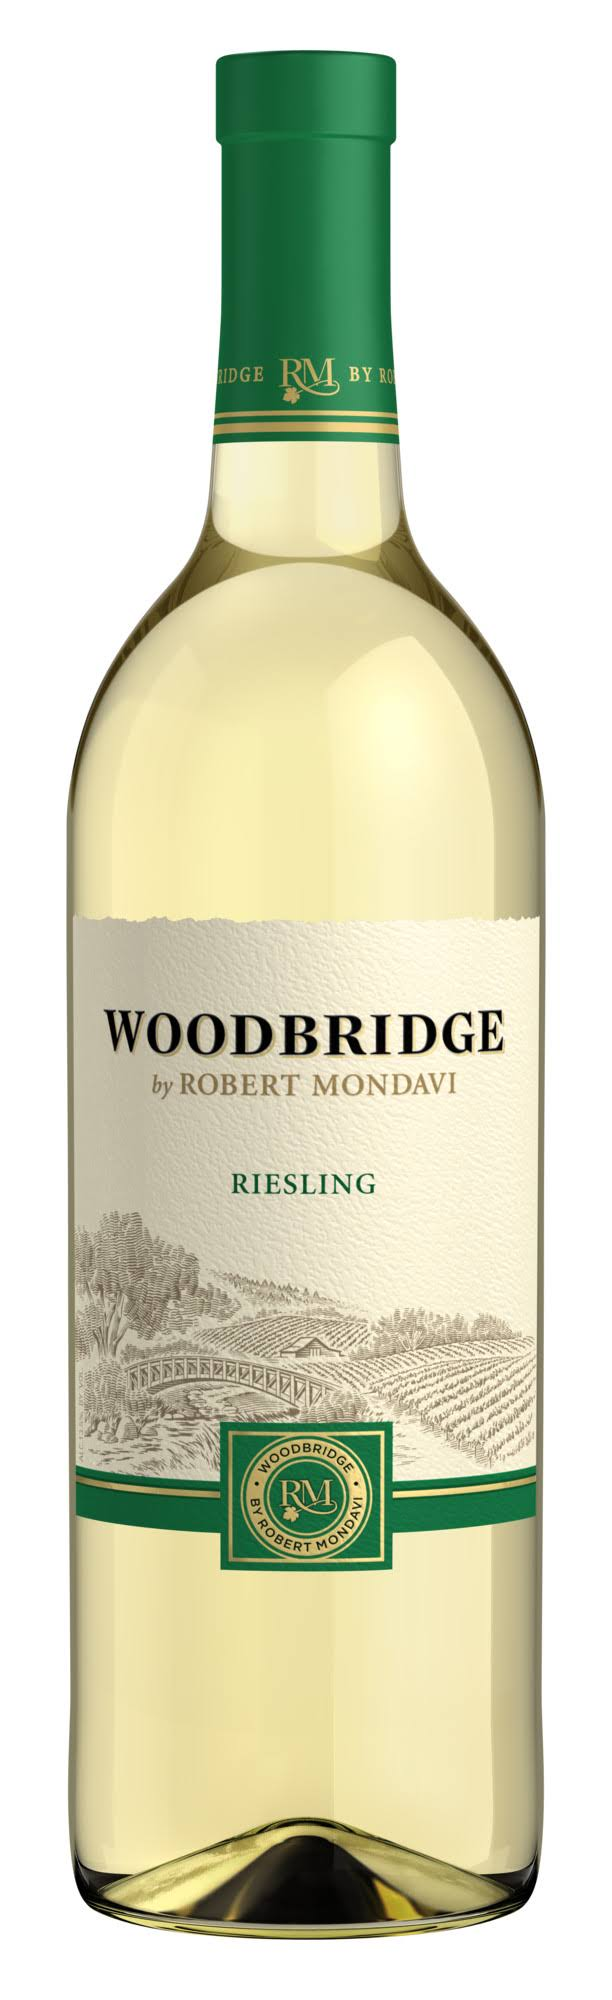 Woodbridge Riesling - California, United States